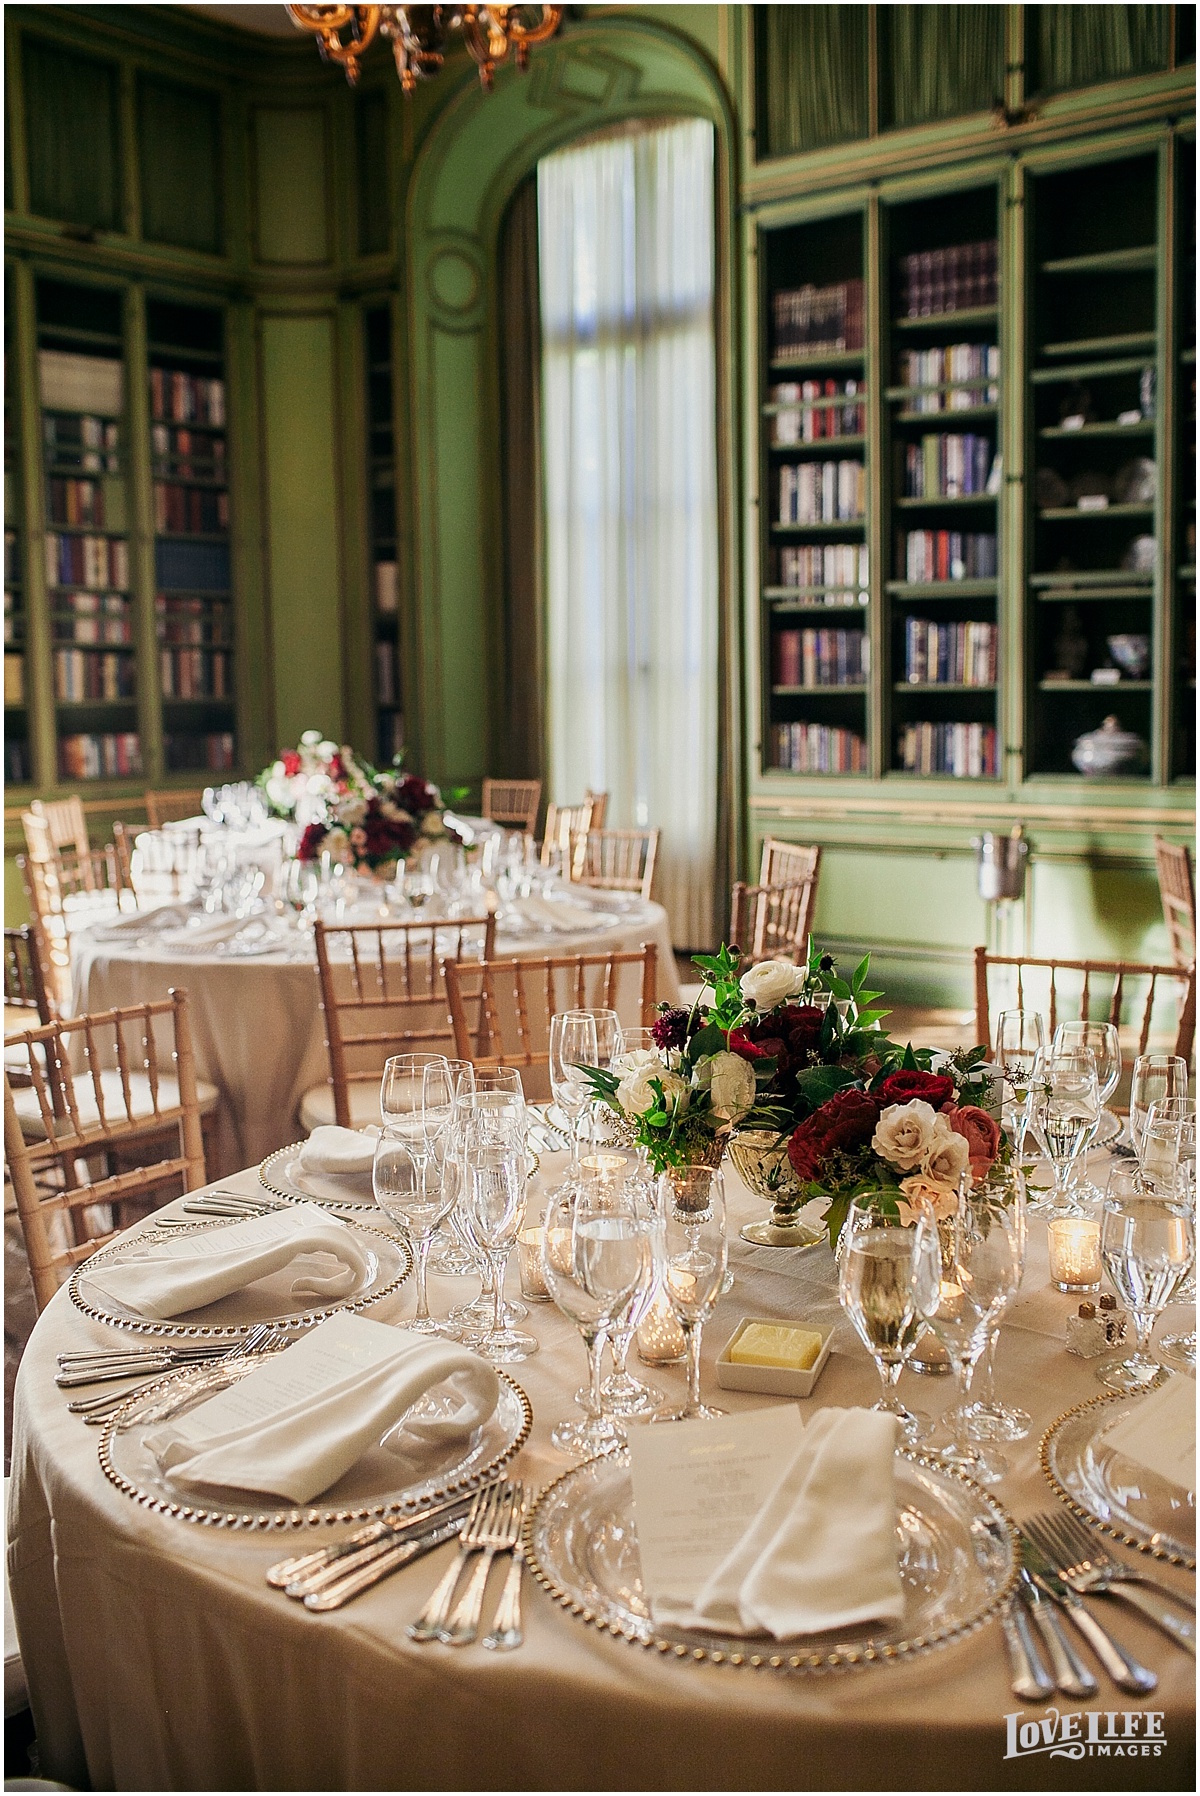 The Library, Love Life Images